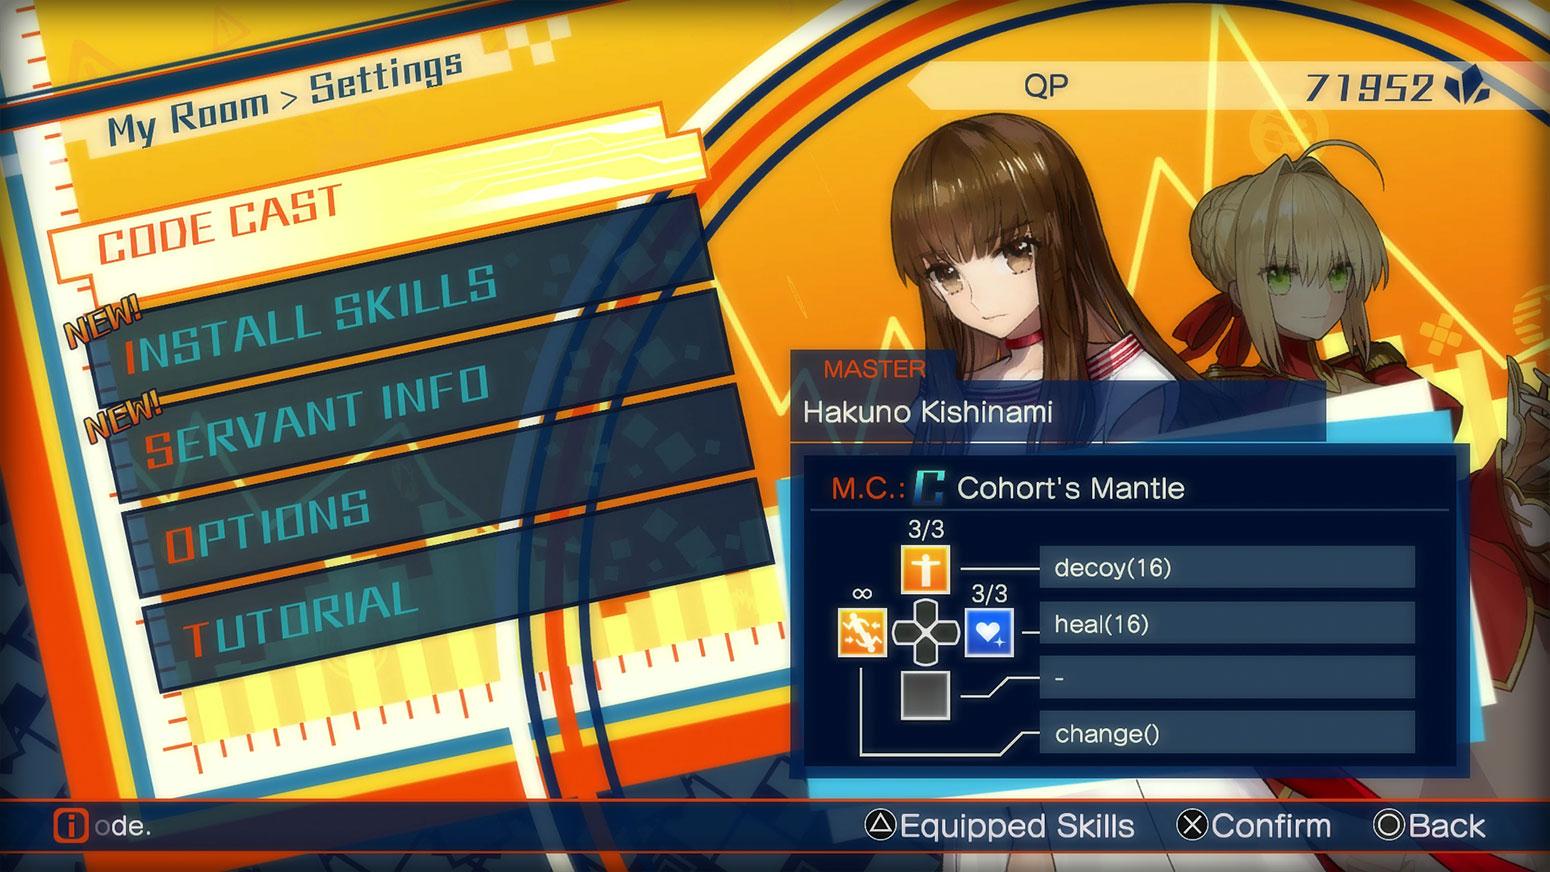 Fate/EXTELLA: The Umbral Star -  Code Cast Screenshot 1